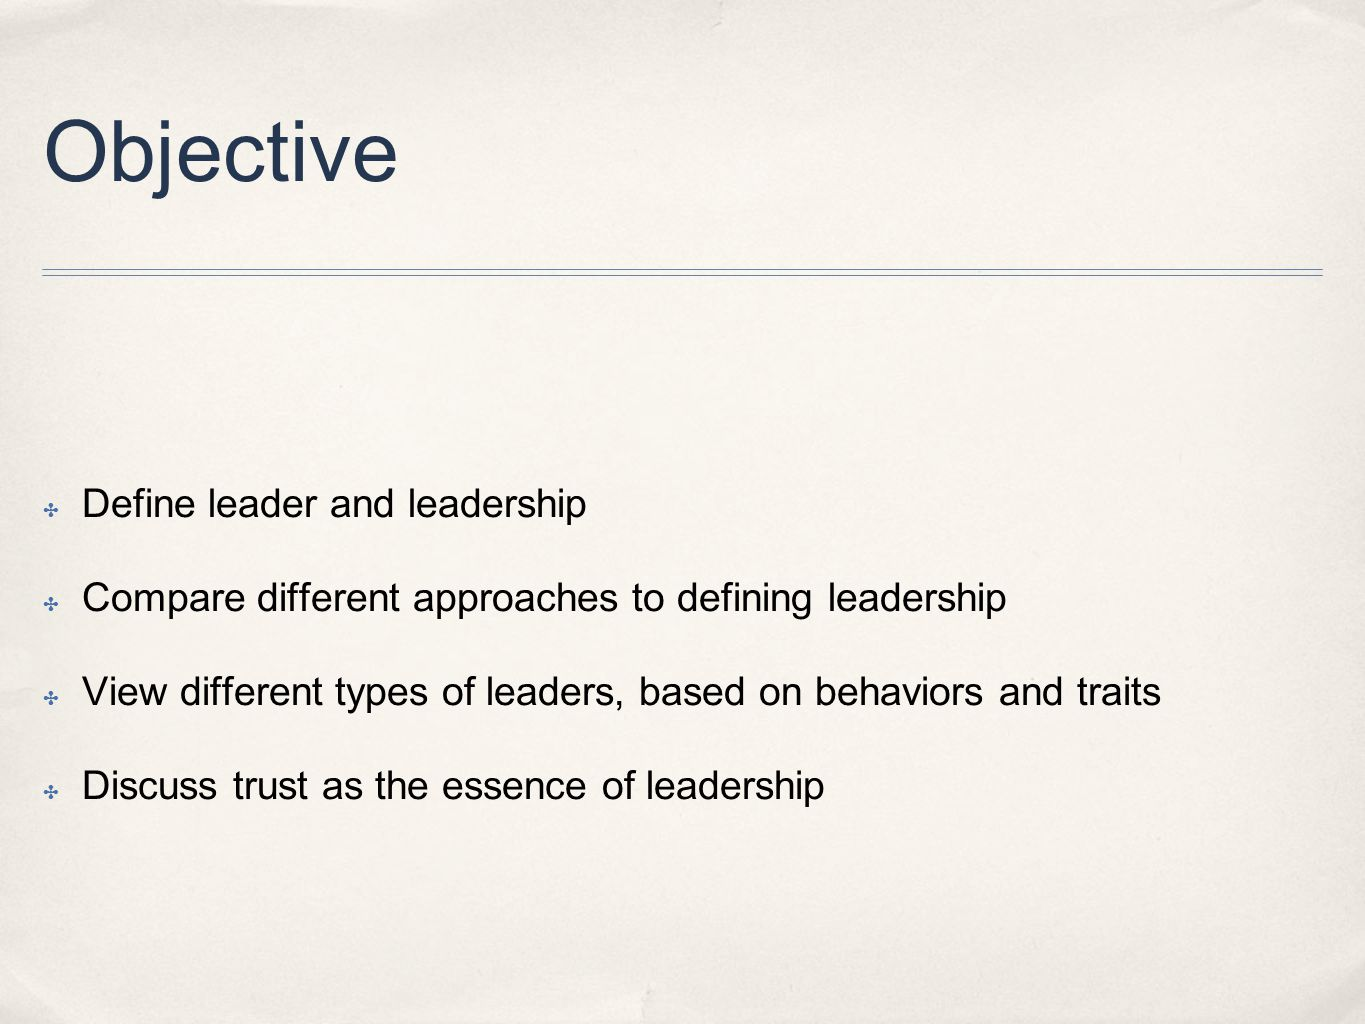 Objective ✤ Define leader and leadership ✤ Compare different approaches to defining leadership ✤ View different types of leaders, based on behaviors and traits ✤ Discuss trust as the essence of leadership